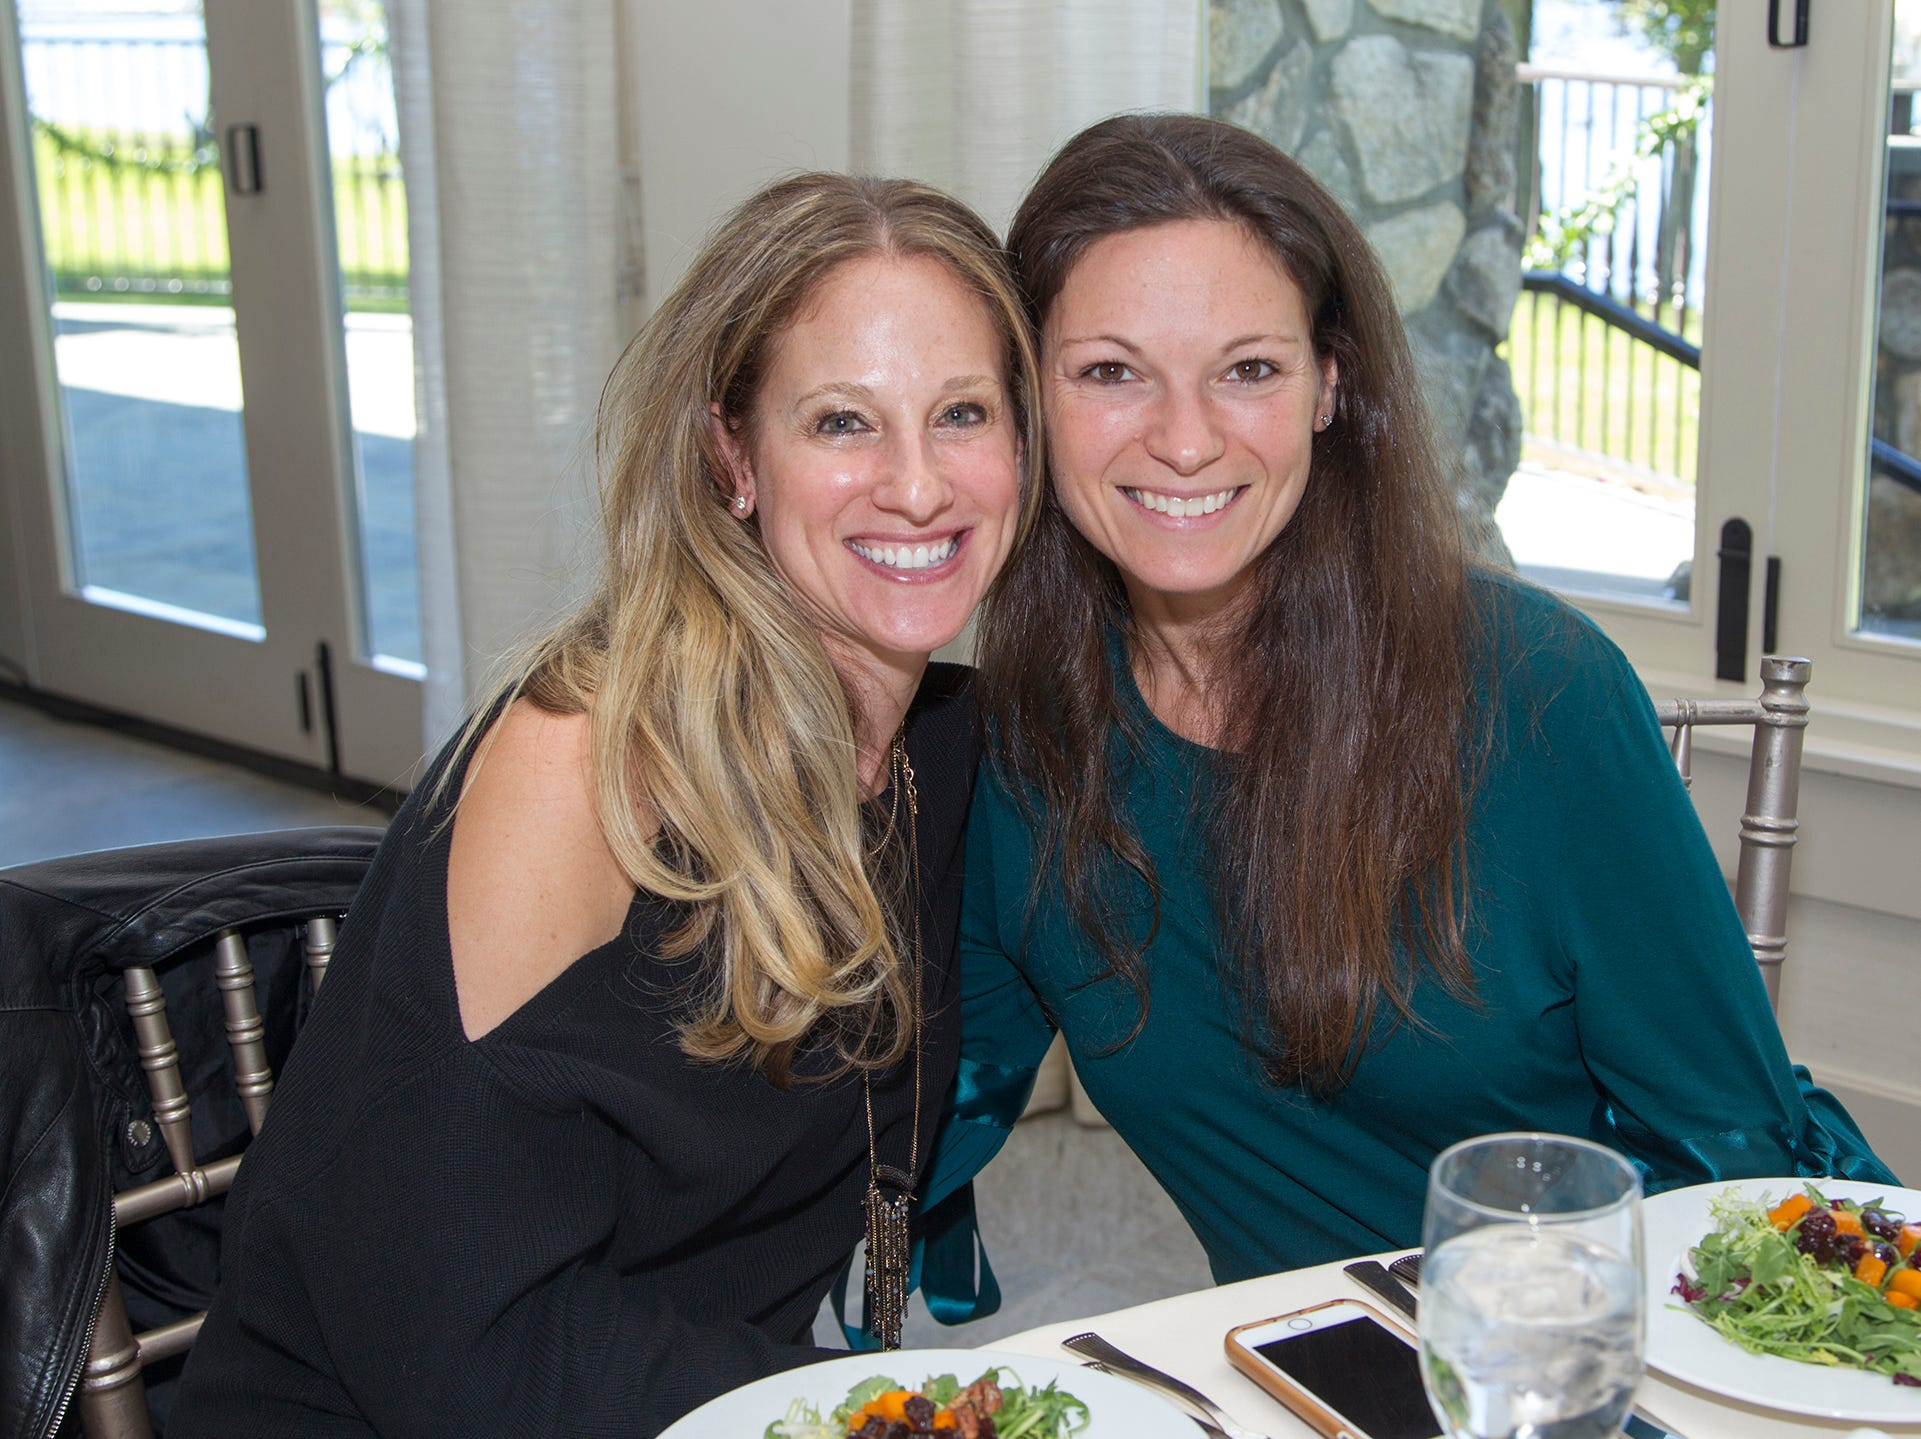 Lauren Gross, Michele Loskant. Spring Lake Toys Foundation held its 3rd annual fundraising gala luncheon at Indian Trail Club in Franklin Lakes. The luncheon fundraiser raises funds for children with illnesses. 10/18/2018